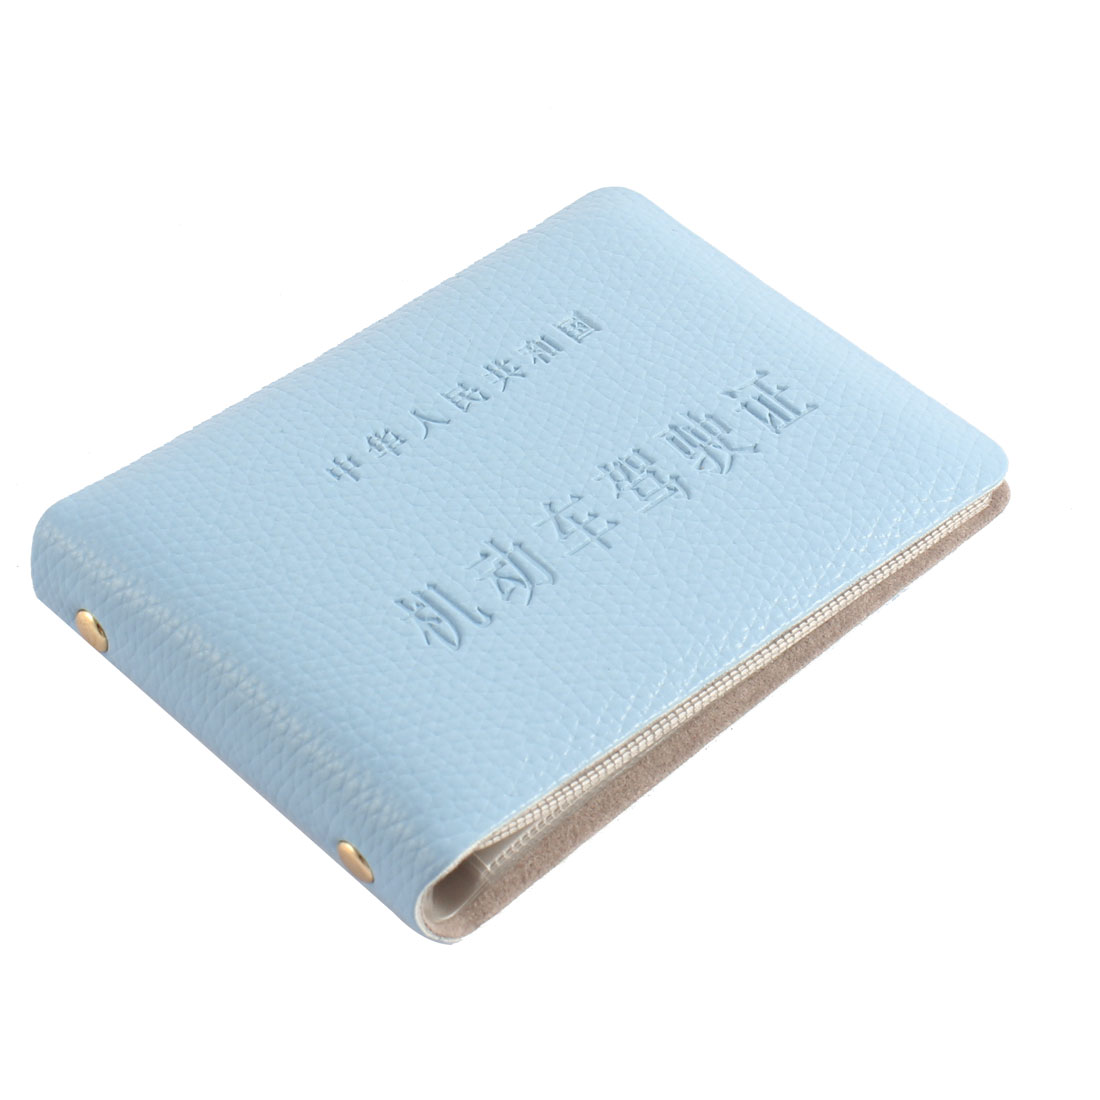 Baby Blue Faux Leather Drivers Driving Licence ID Card Holder Wallet Cover